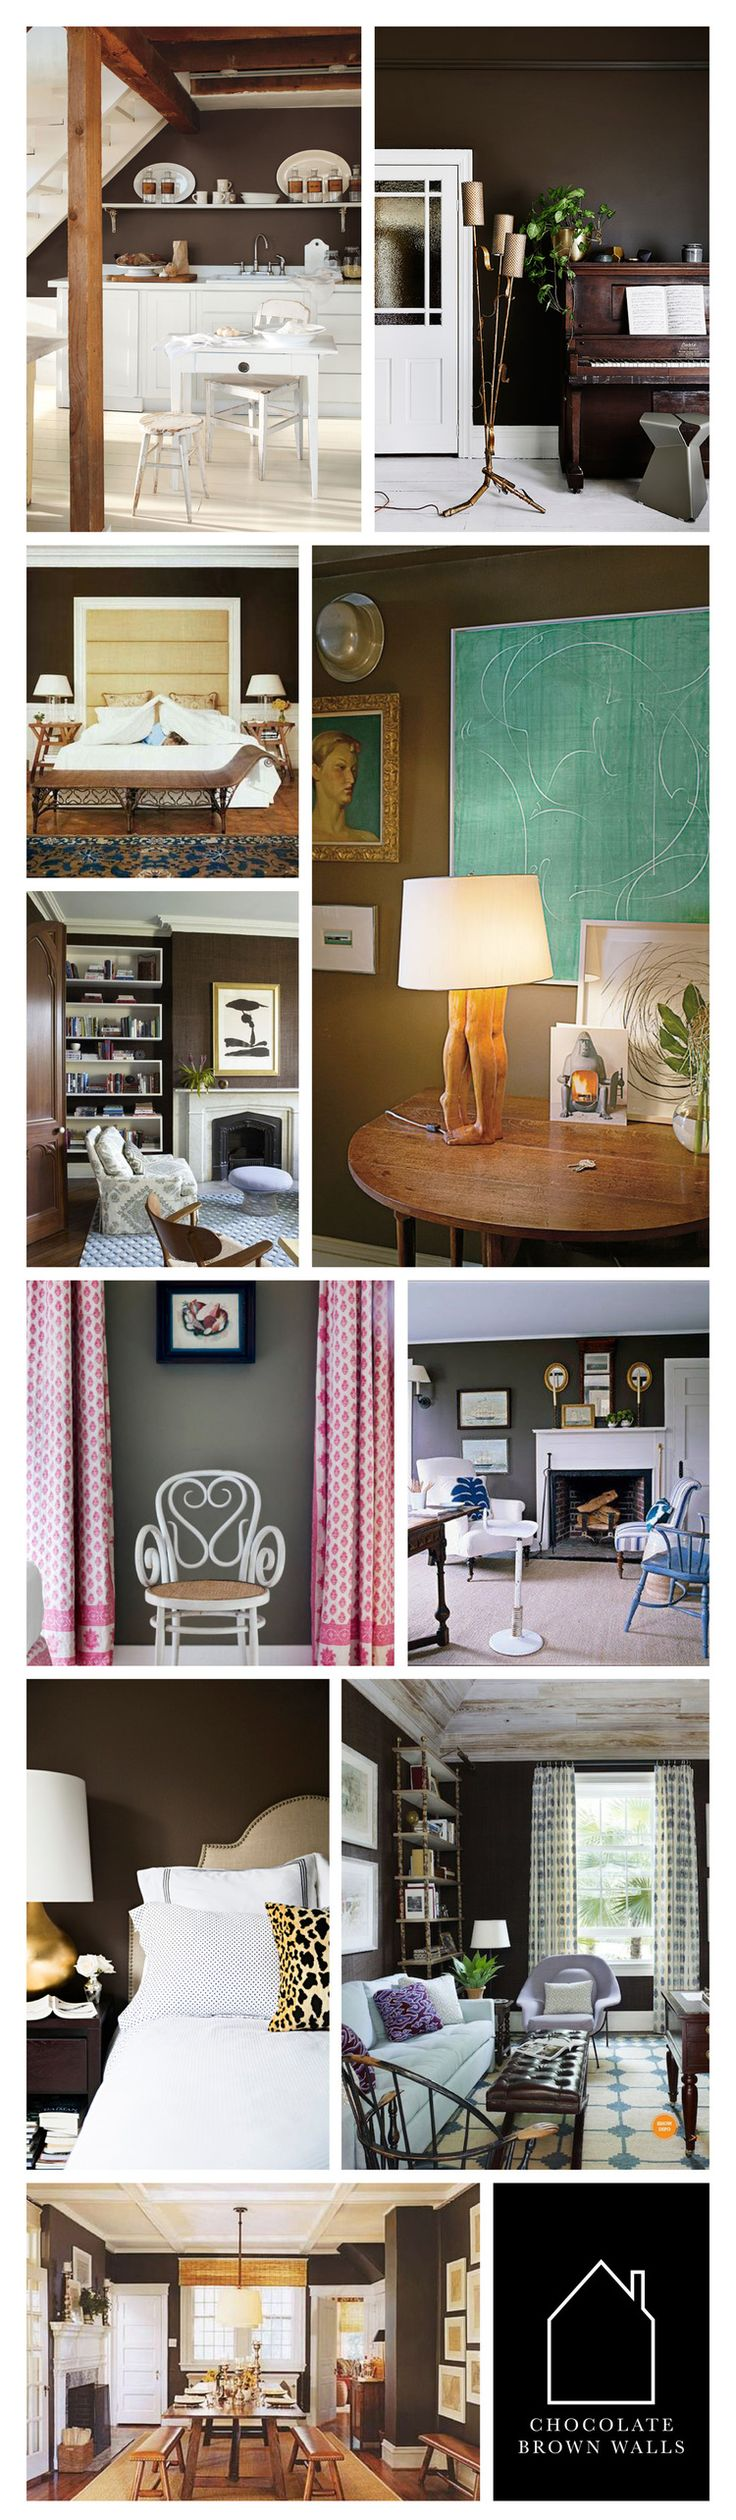 chocolate brown walls | THE PLACE HOME